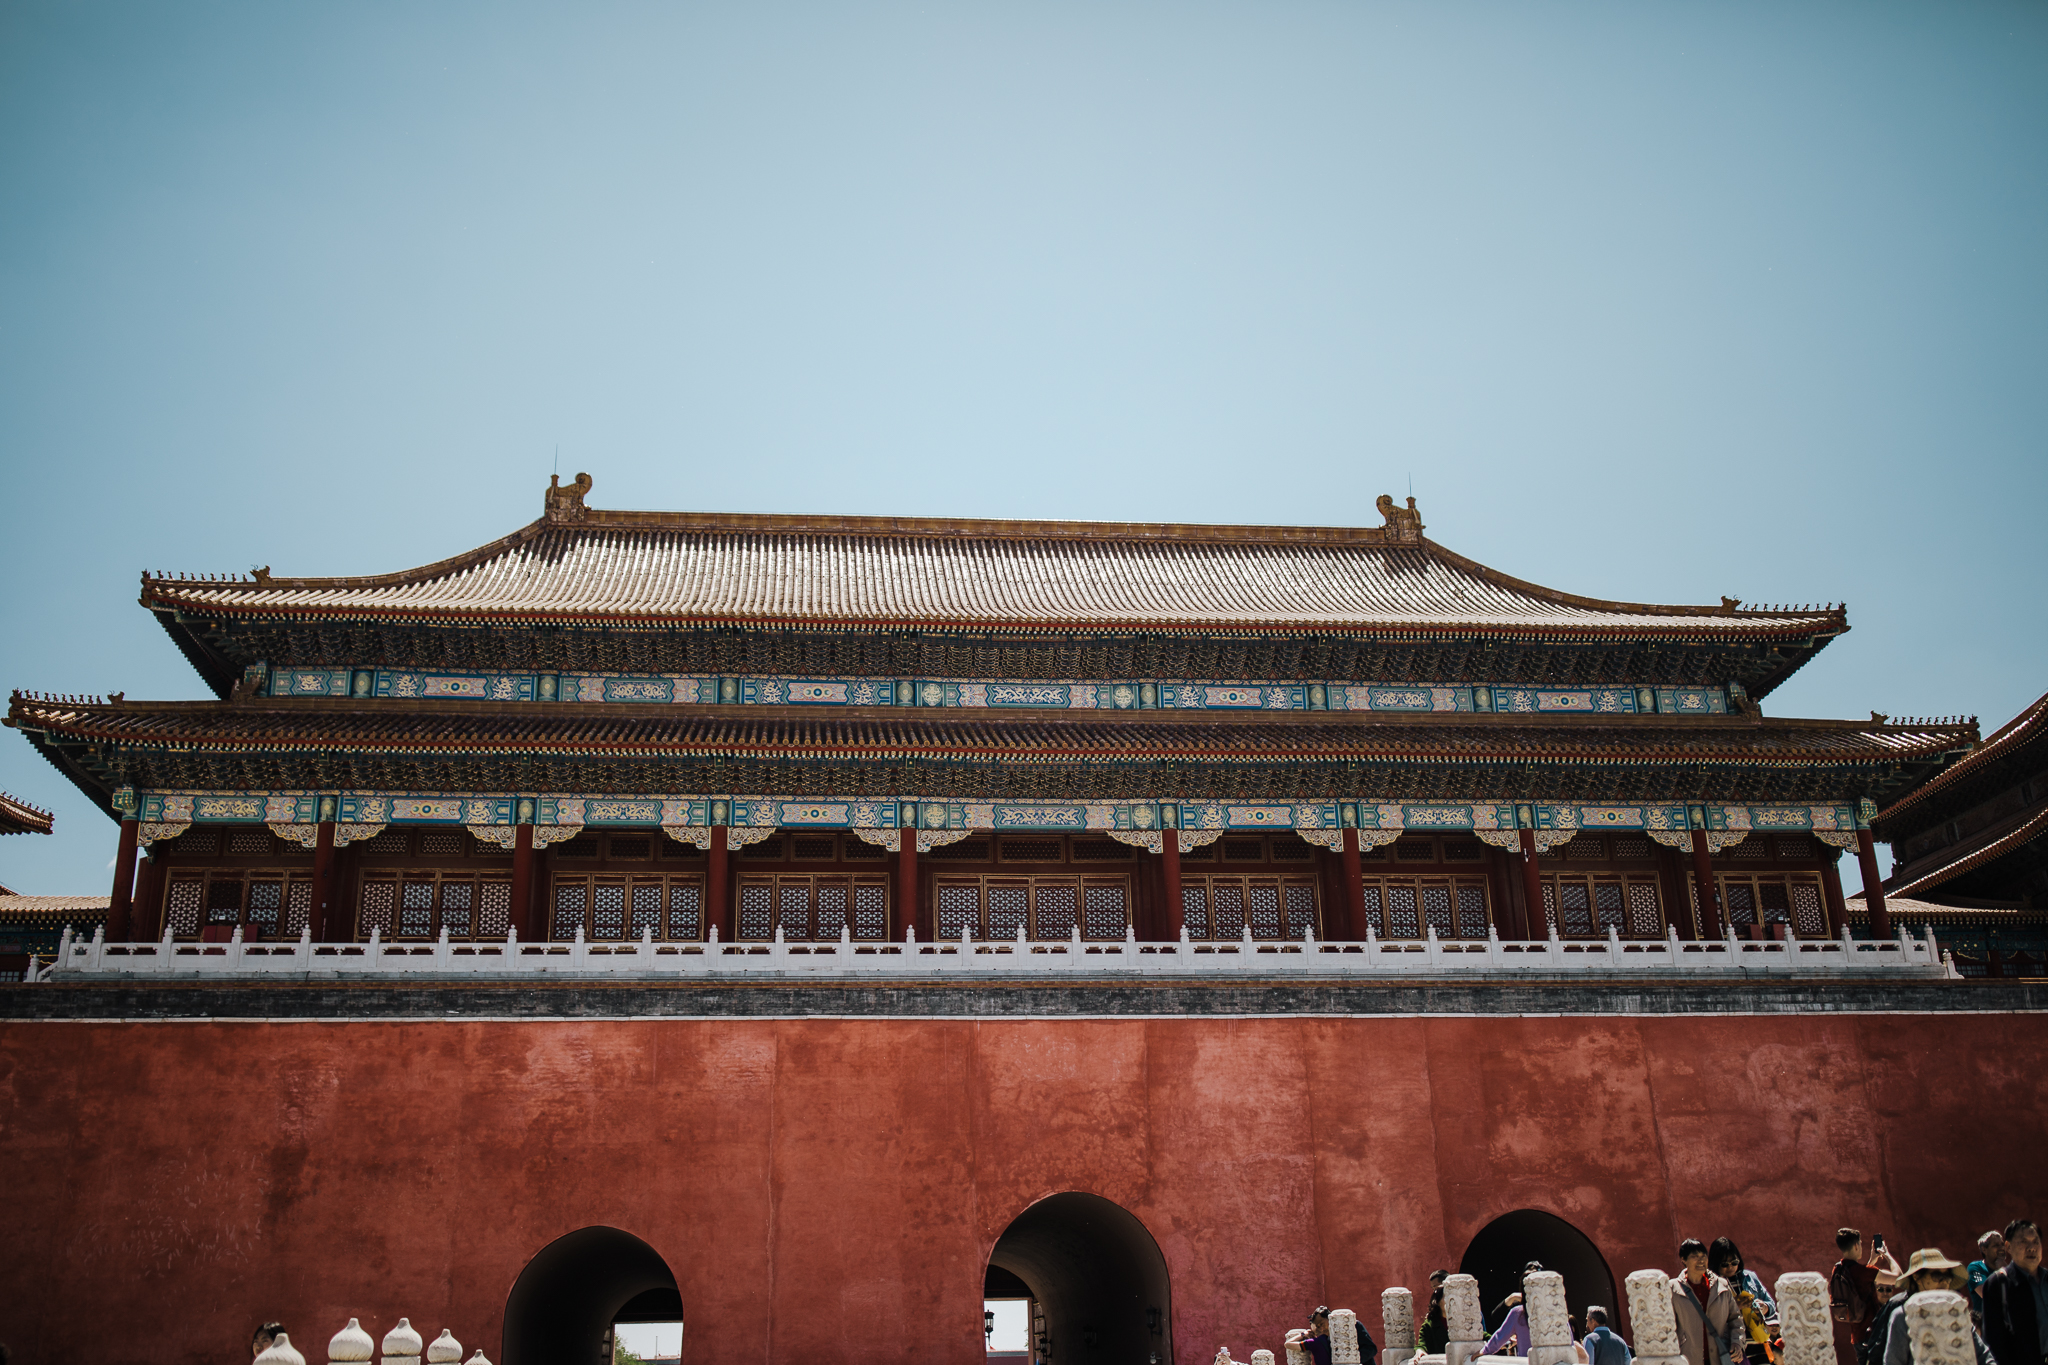 Mutianyu, Great Wall of China,  Beijing, Forbidden City, Emperors Summer Palace (8 of 51).jpg